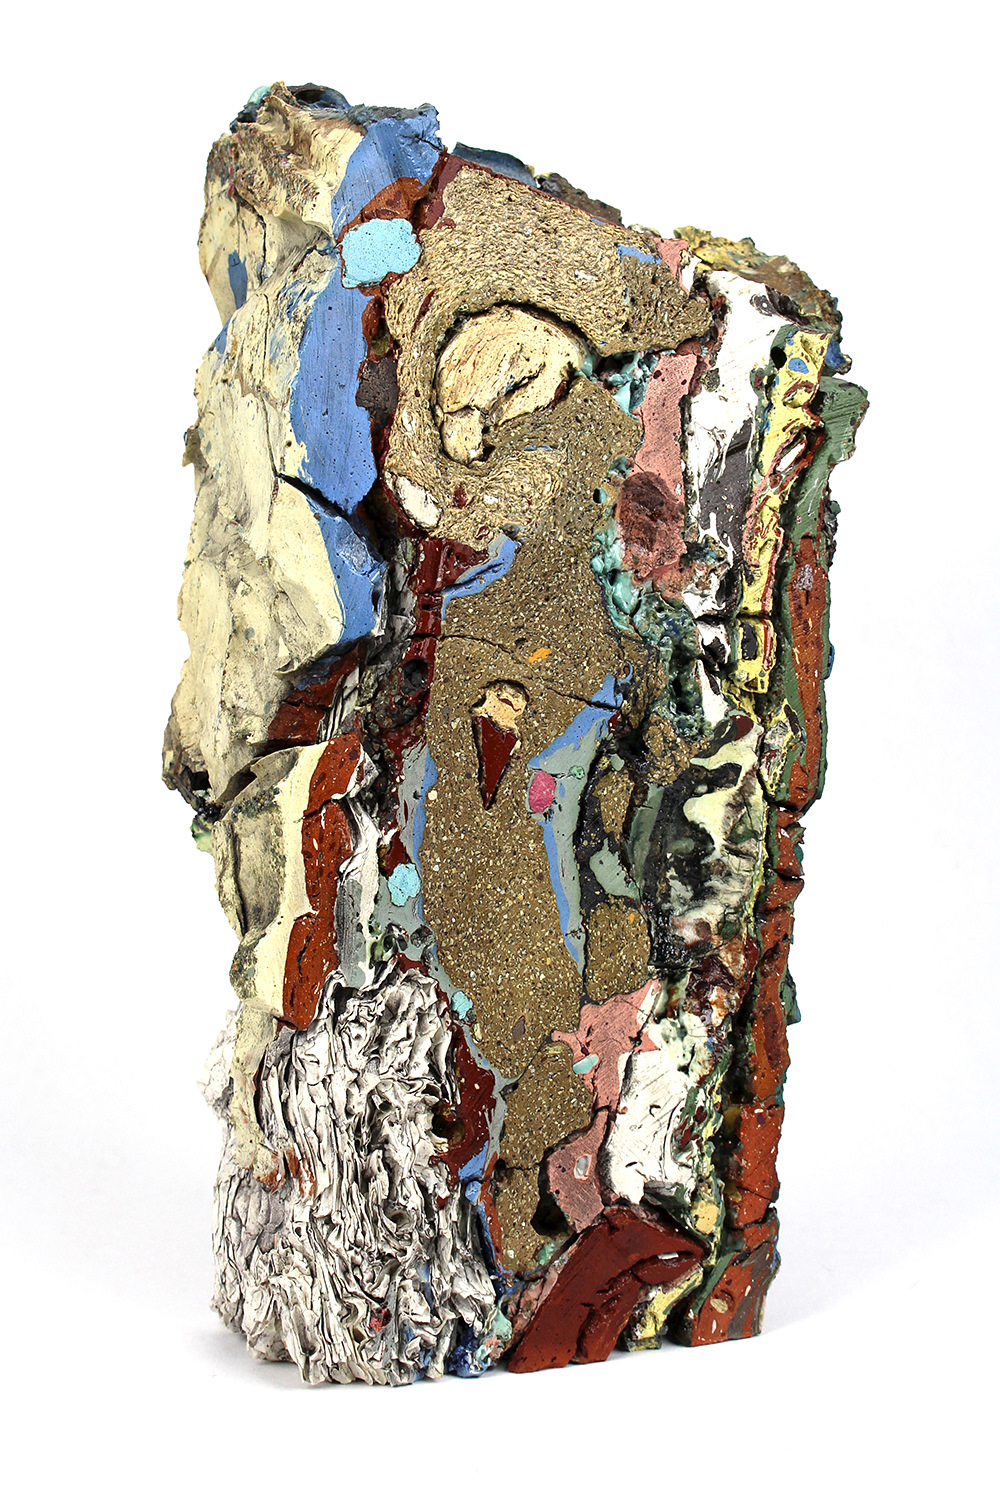 Reclaim No.48: Central Cross Section by Jonathan Mess, 2015